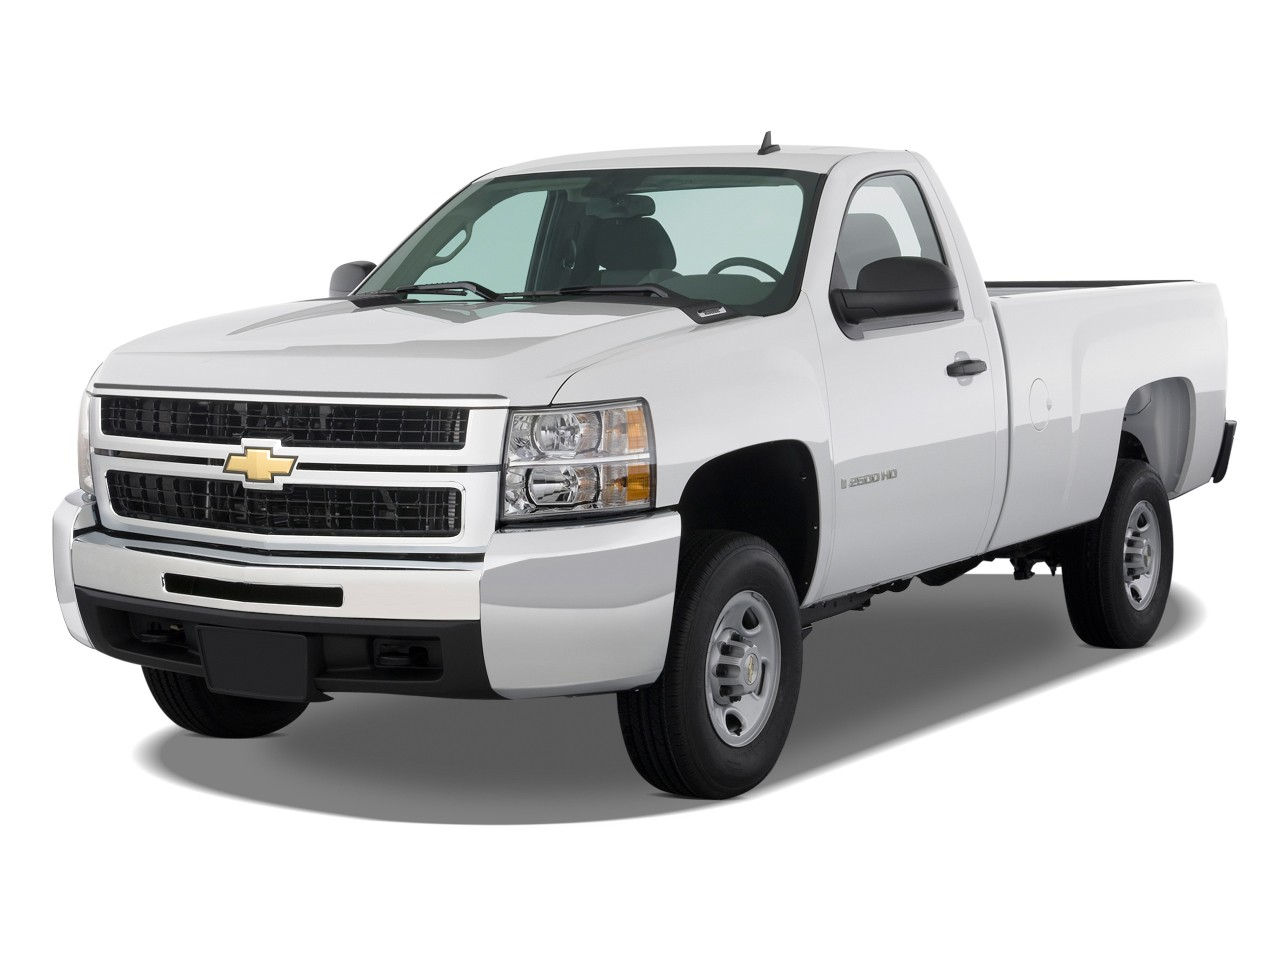 CHEVROLET Silverado 2500HD Regular Cab specs & photos ...